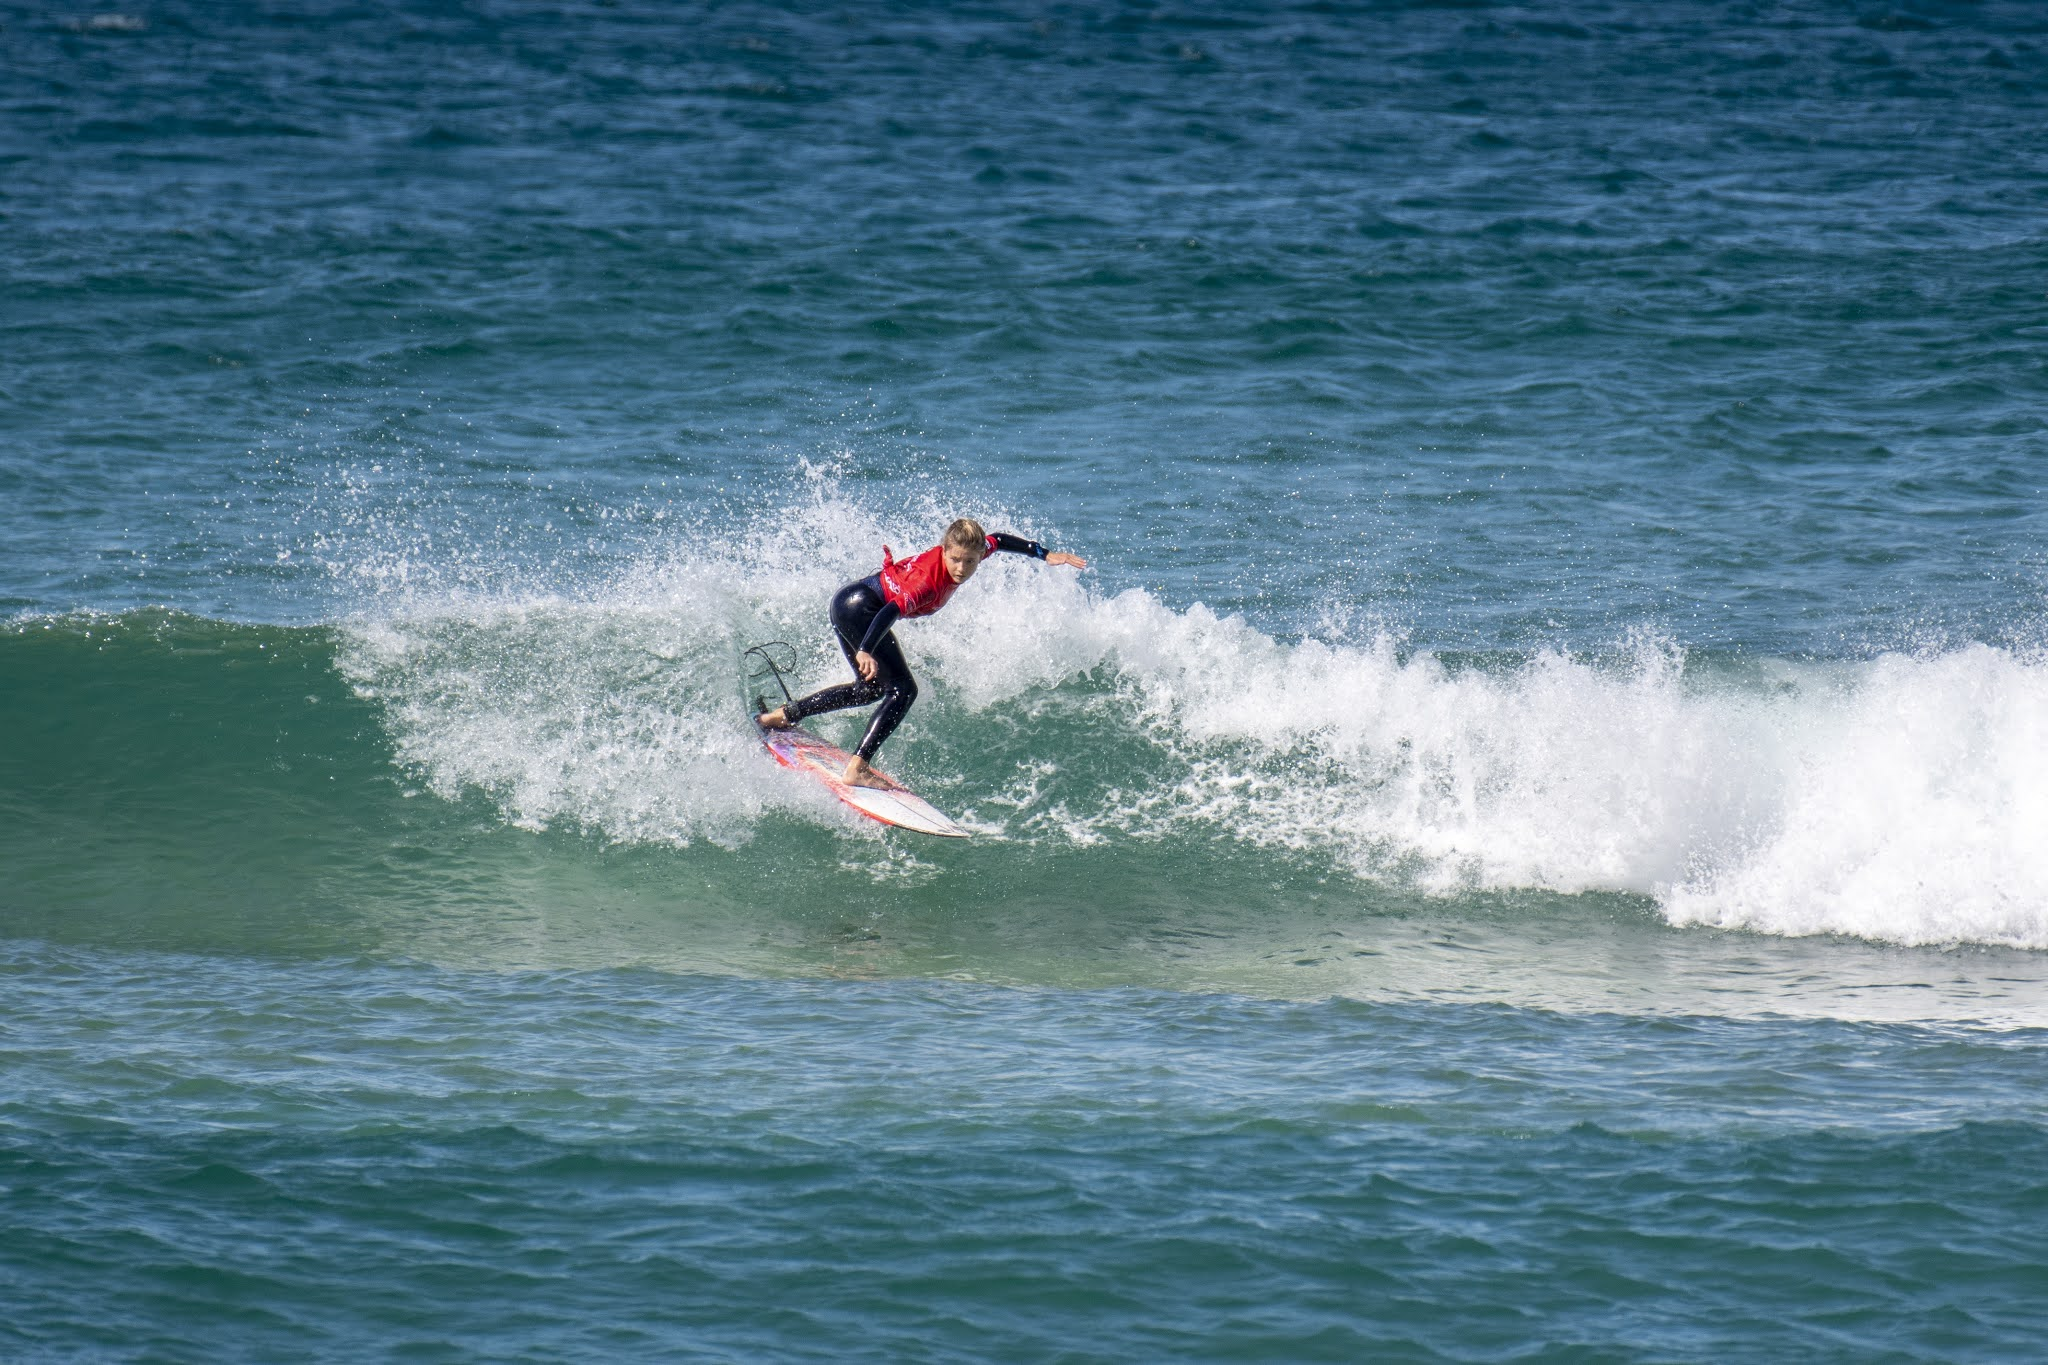 Lucy Darragh (Gerringong) took out the win for the under 12 girls division at the 2020 Havaianas NSW Grommet State Titles.